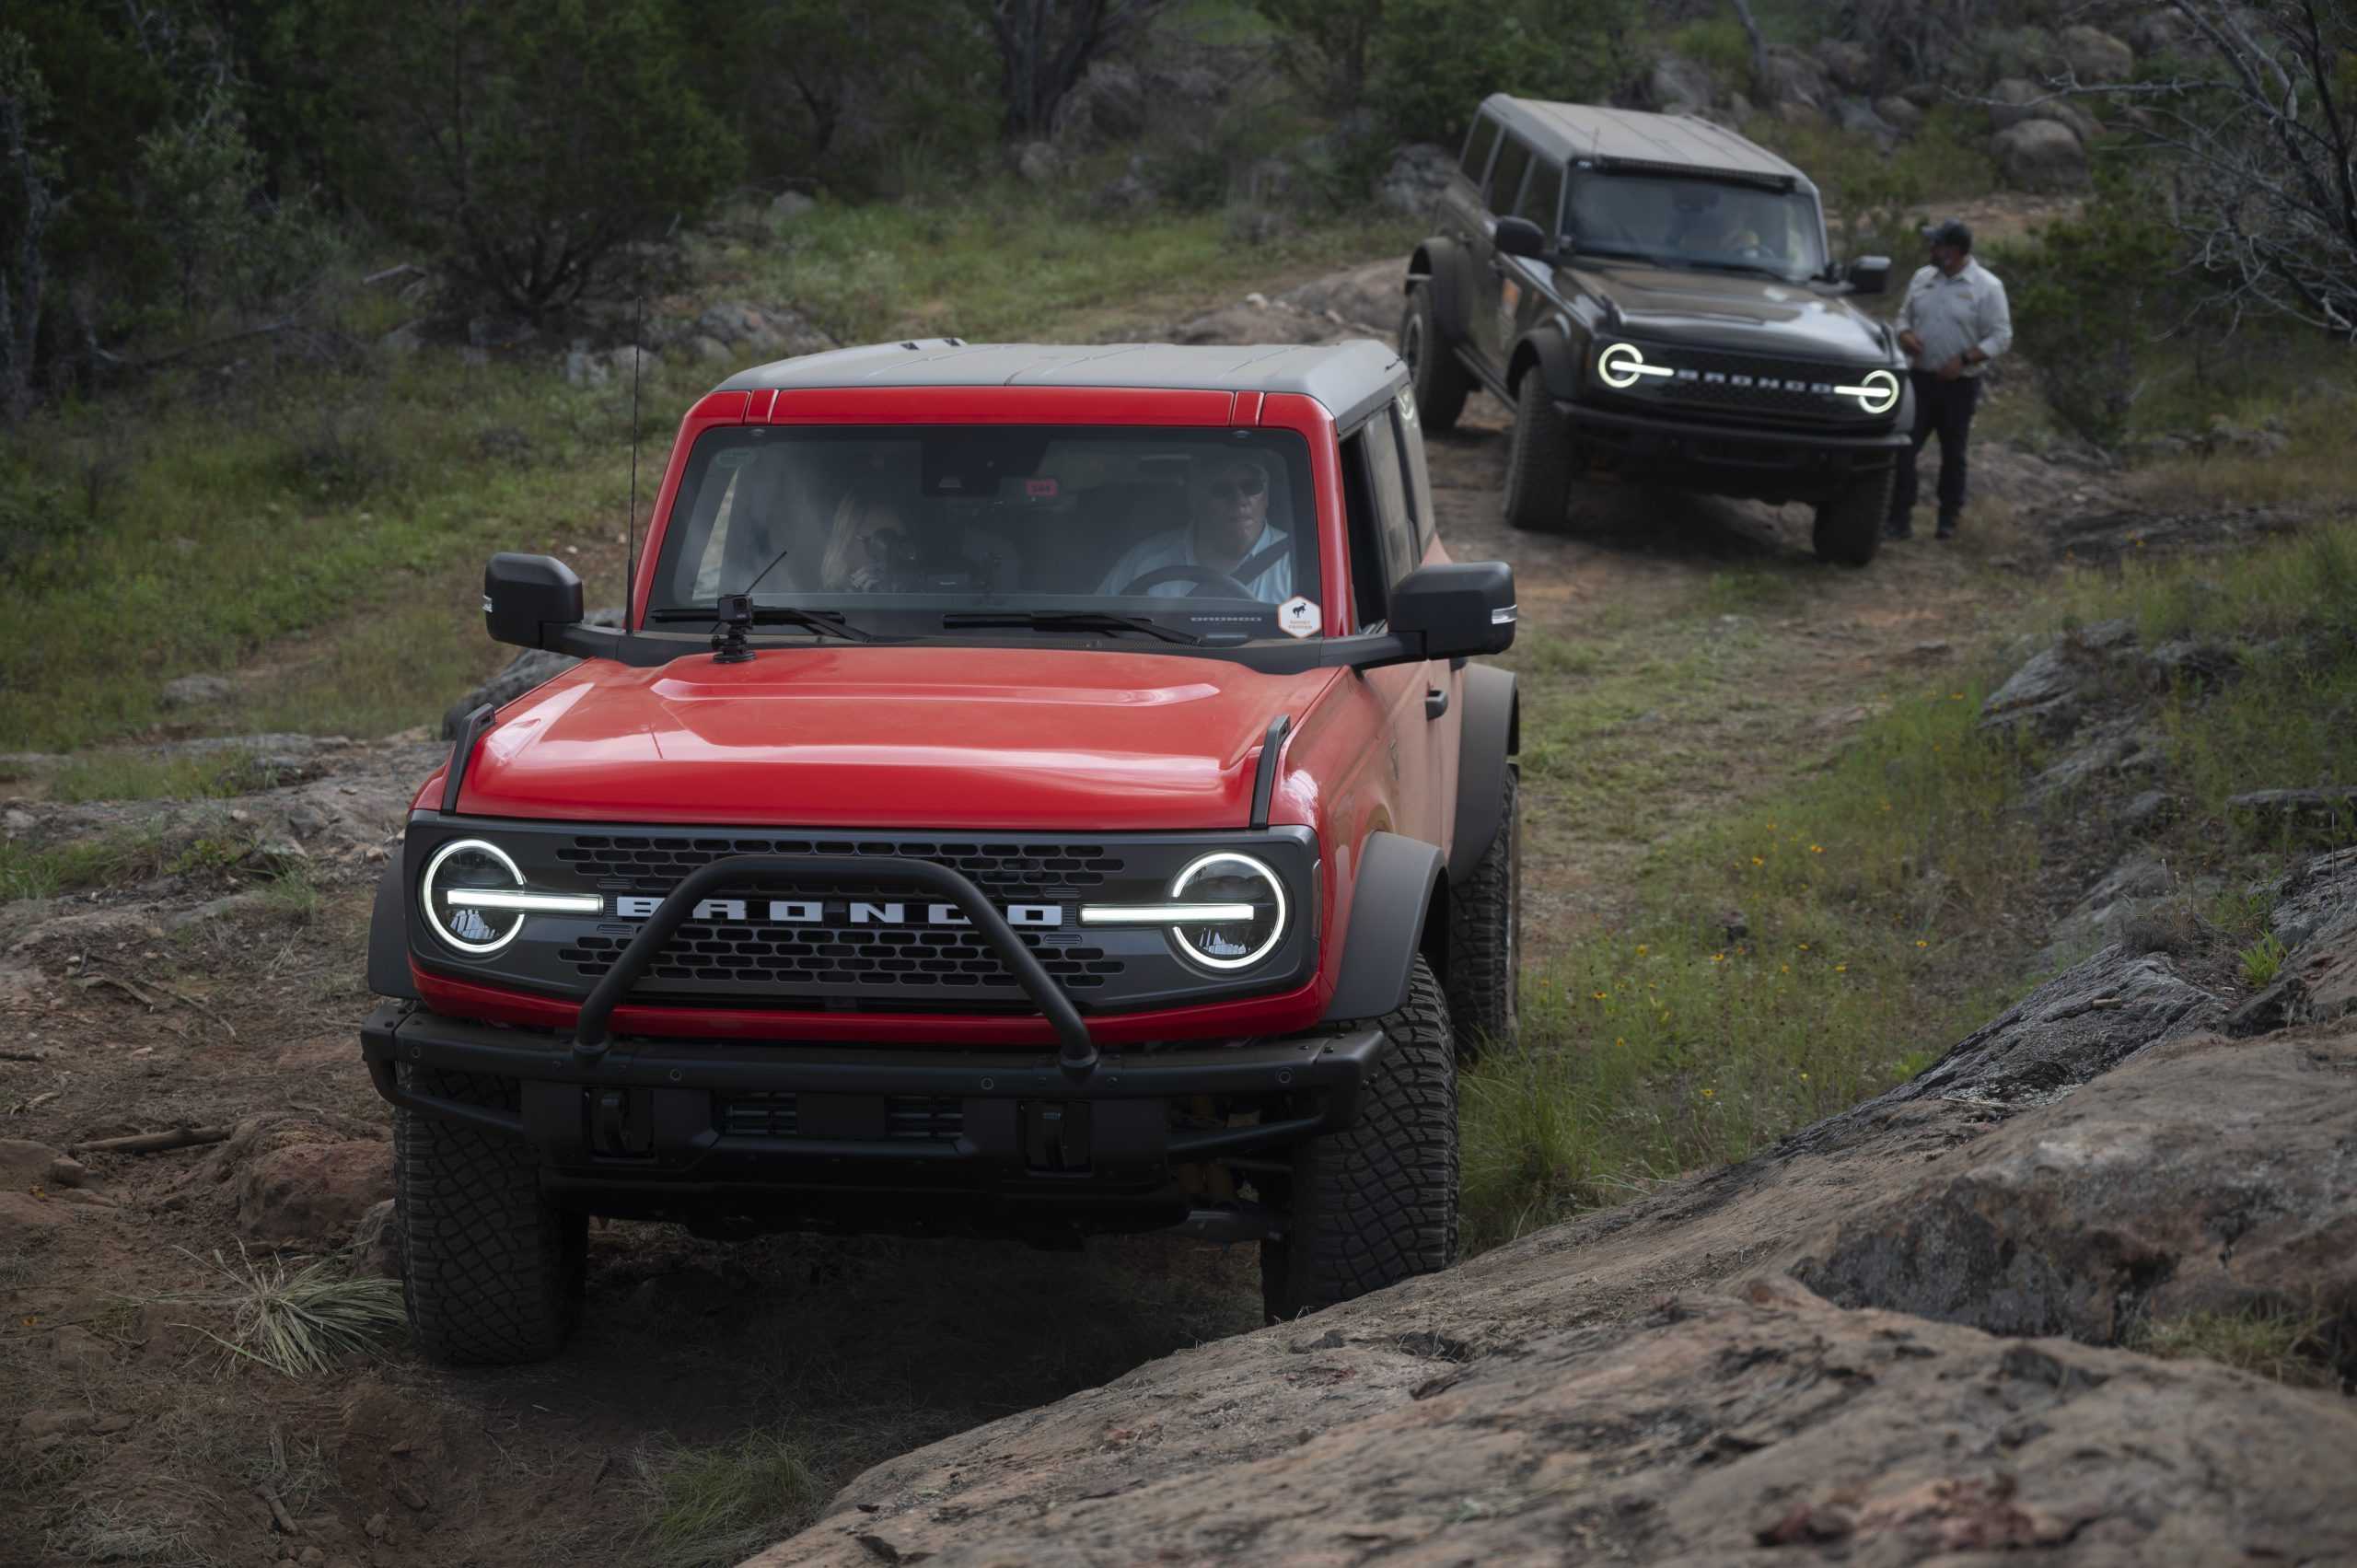 2021 Ford Broncos on trail front